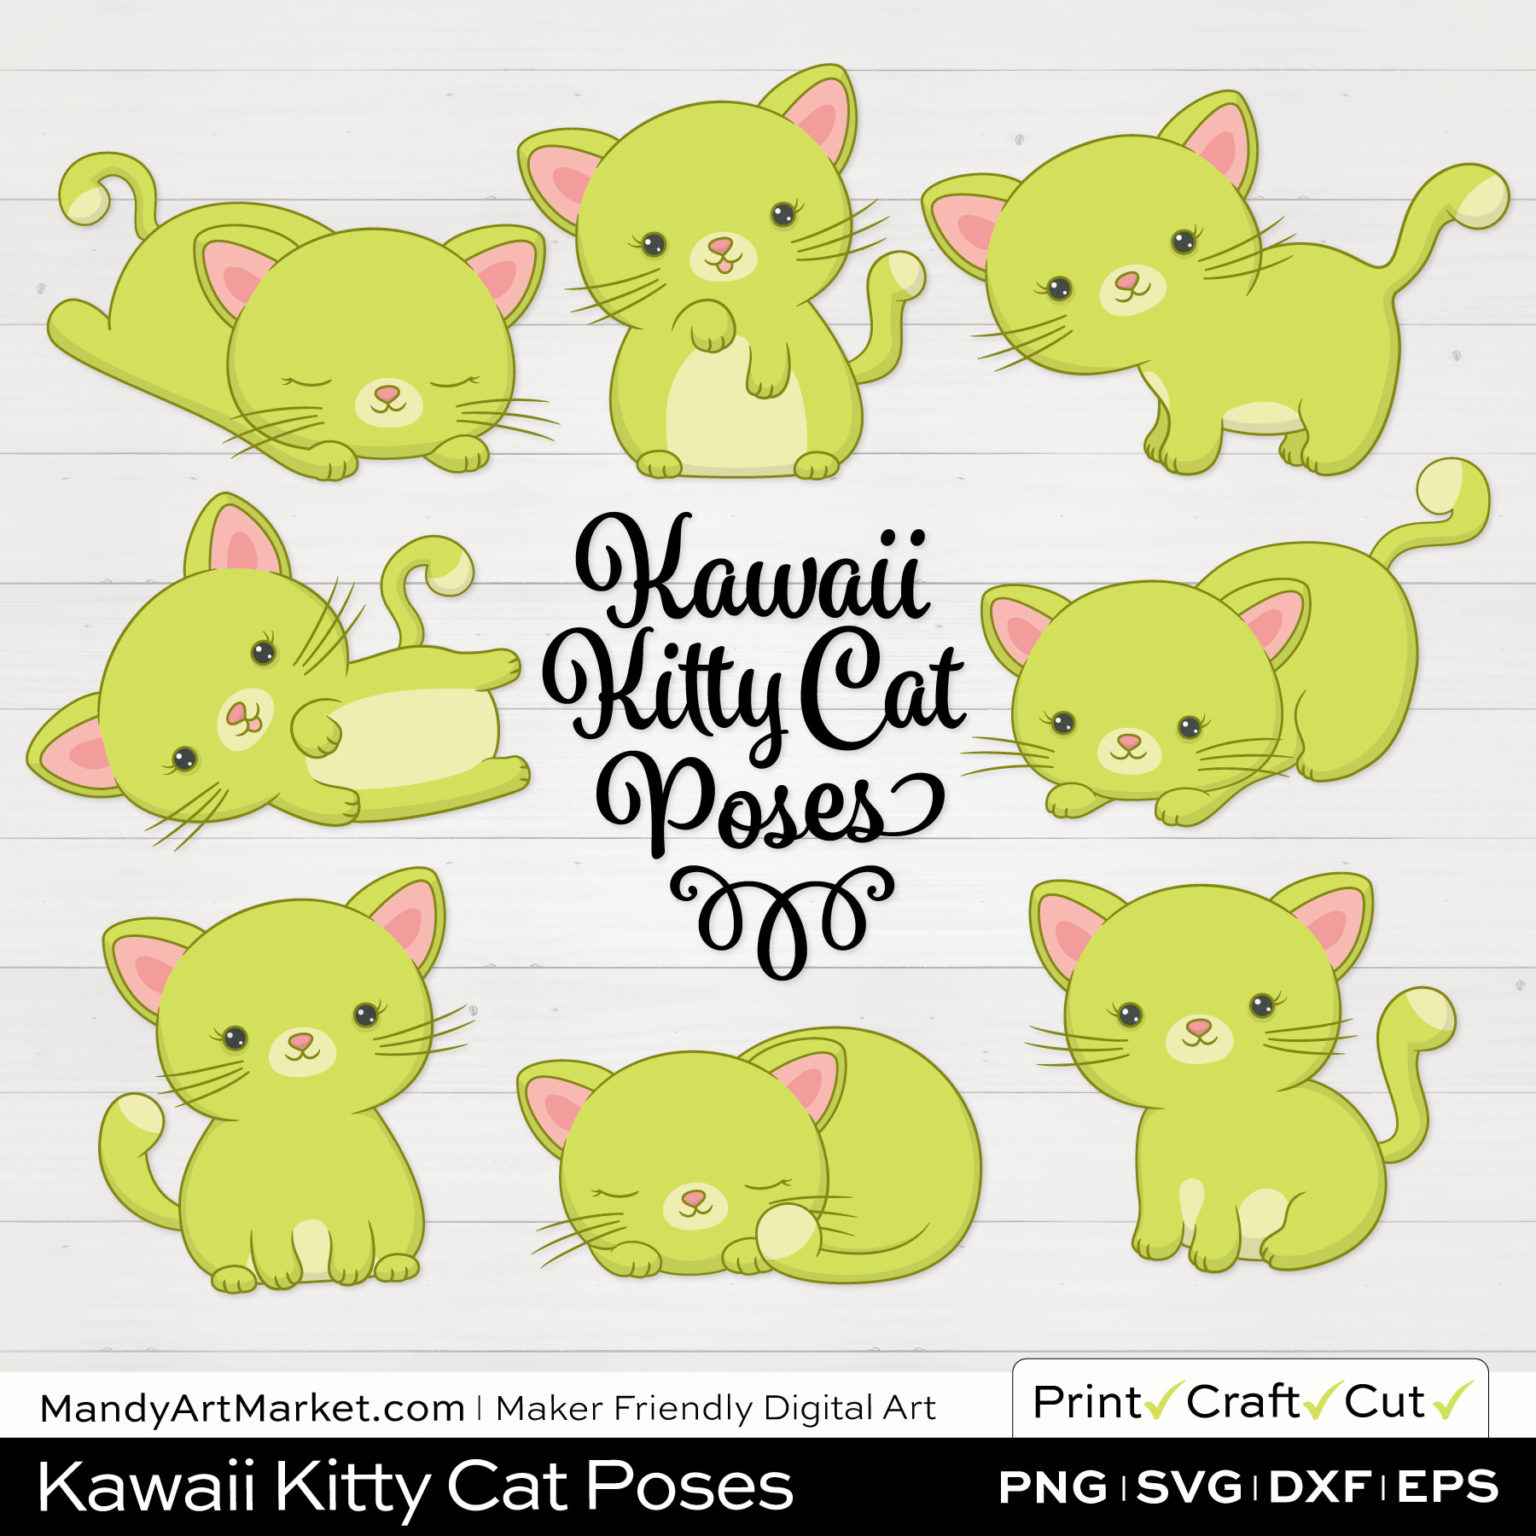 Pear Green Kawaii Kitty Cat Poses Clipart on White Background